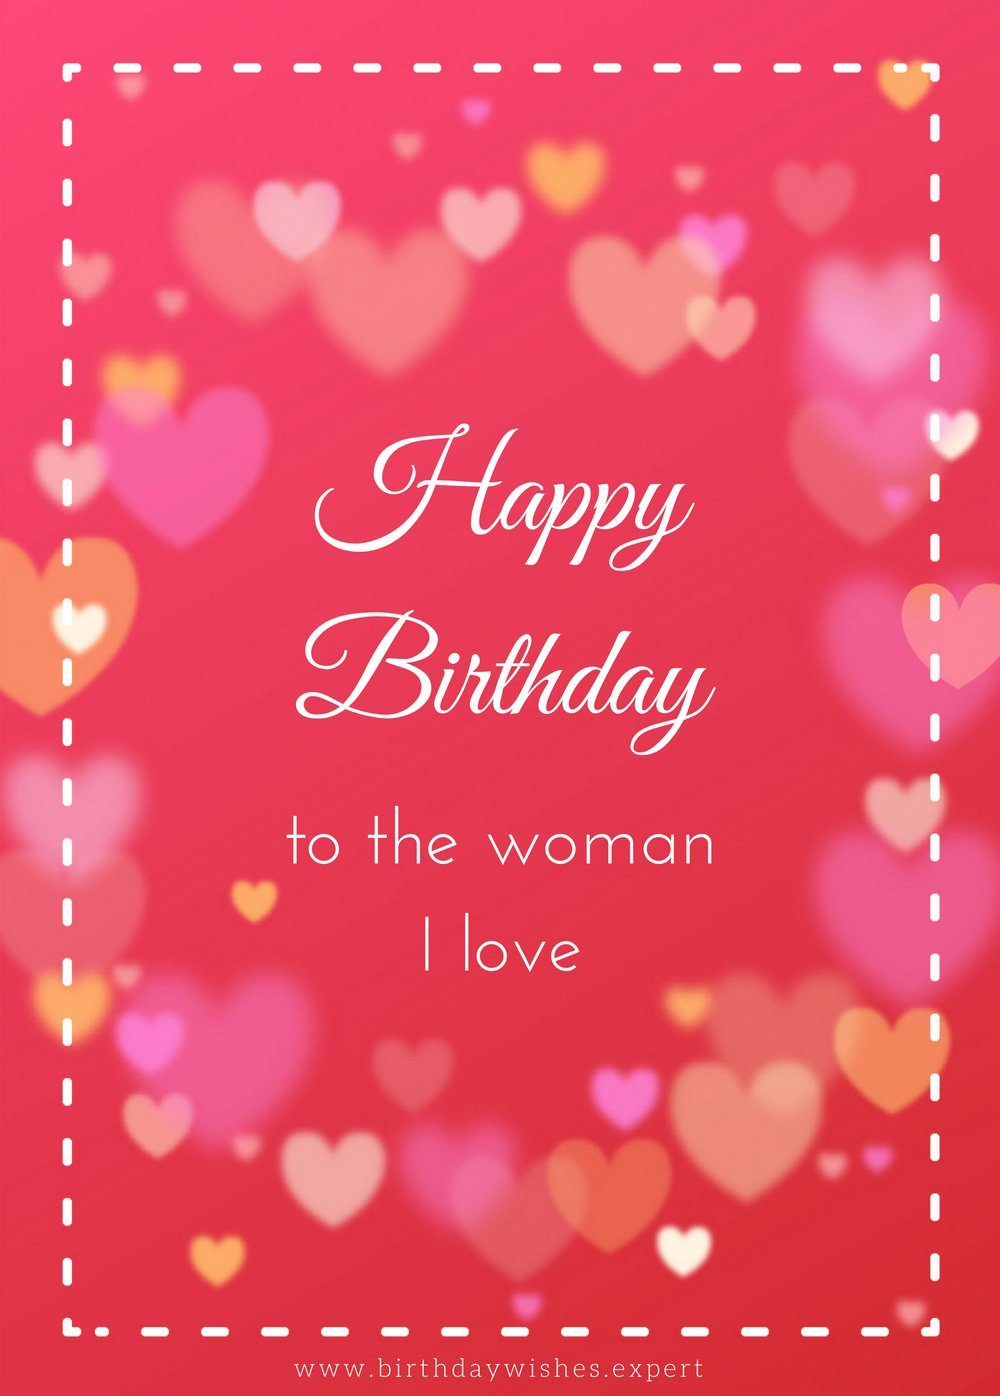 Top 70 Birthday Wishes for your Wife – Birthday Greetings for Wife